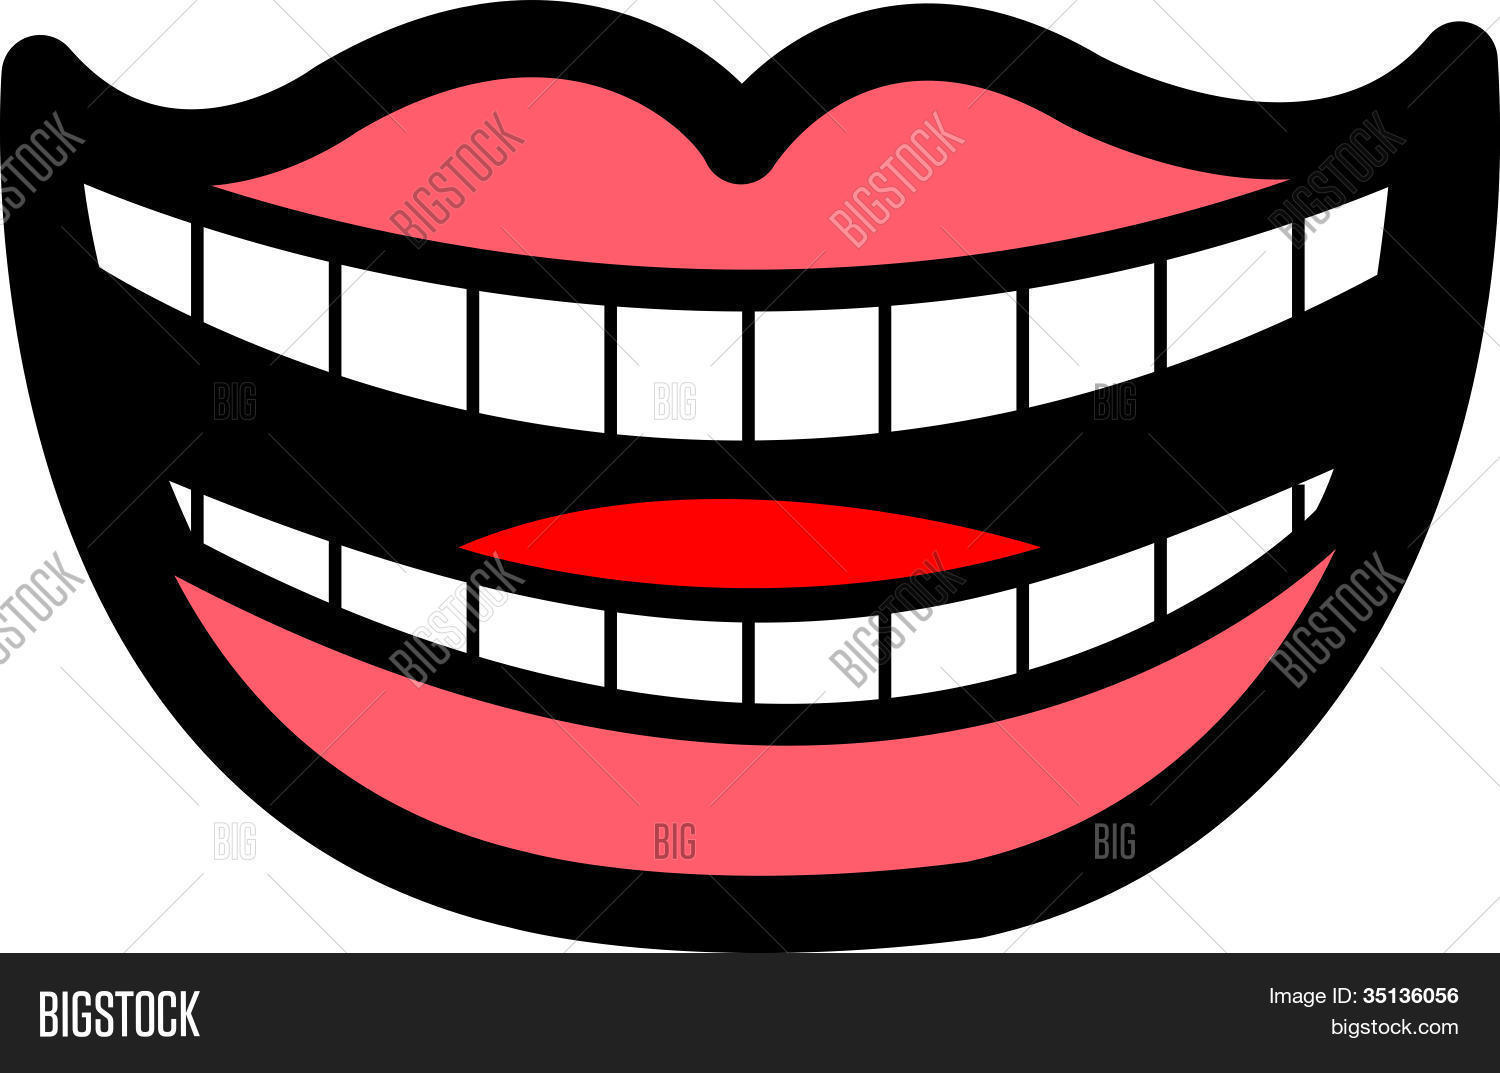 1500x1073 Lips Clipart Big Smile